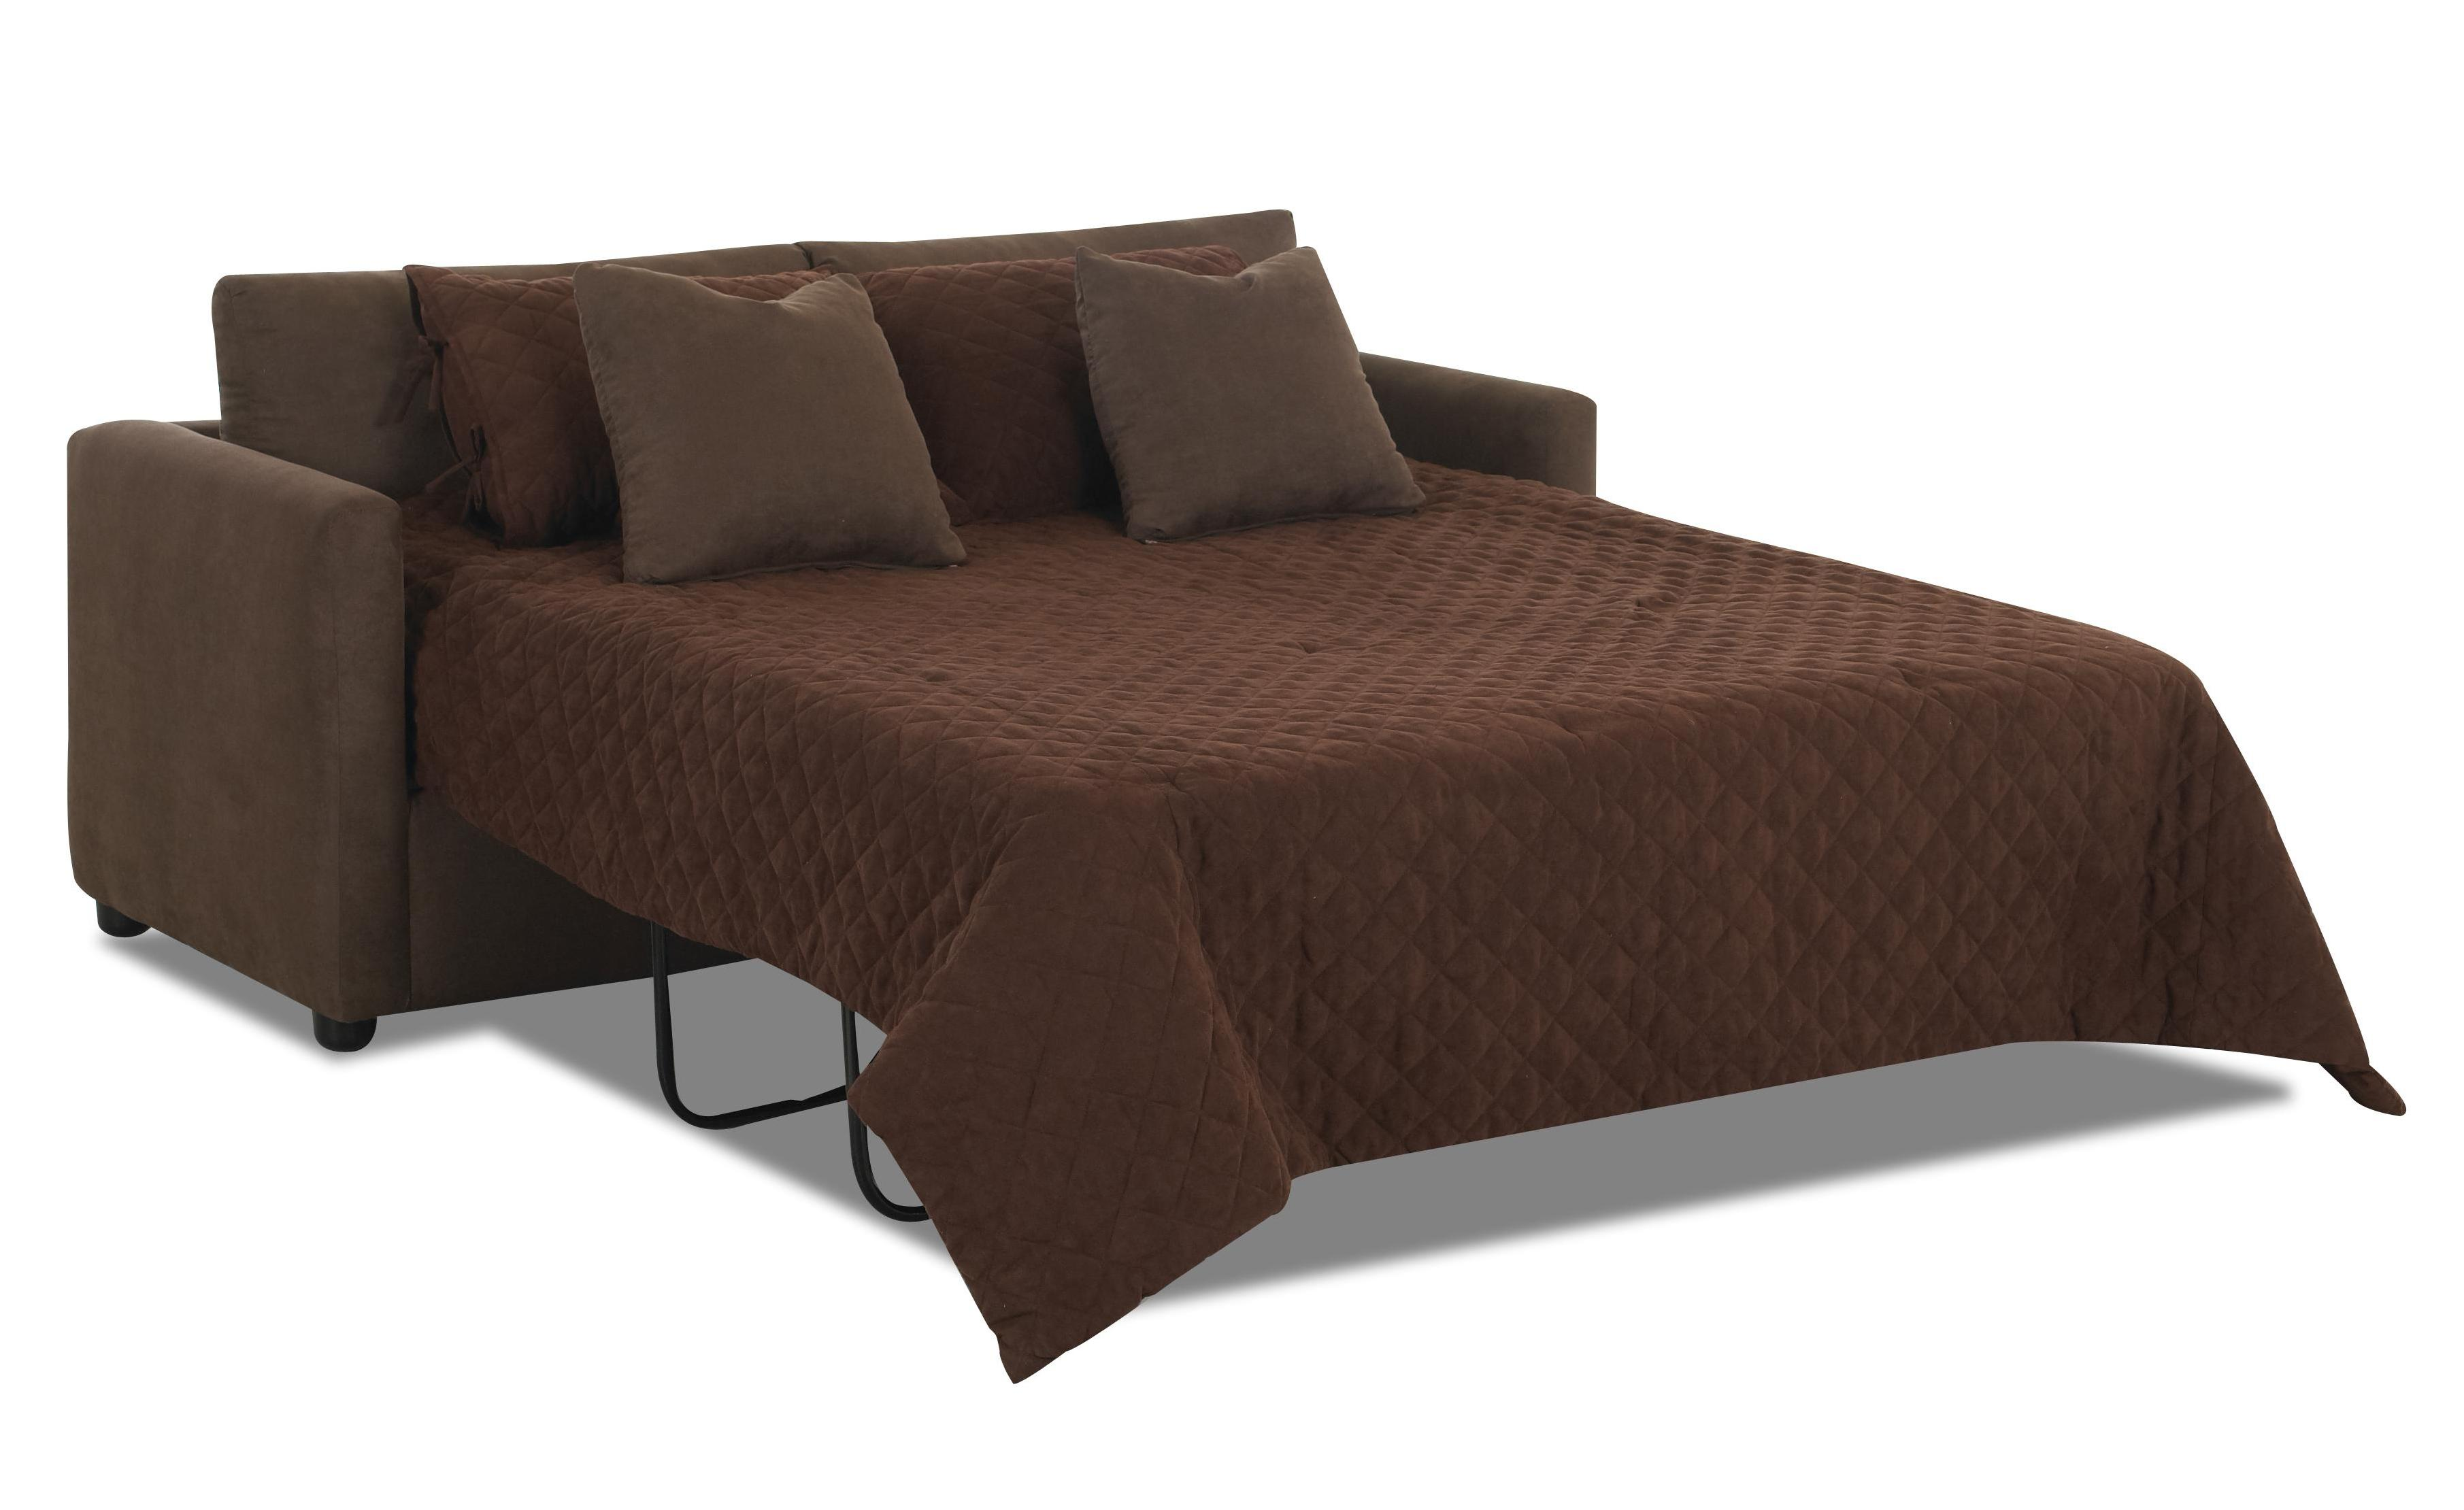 Regular Full Size Sleeper Sofa by Klaussner